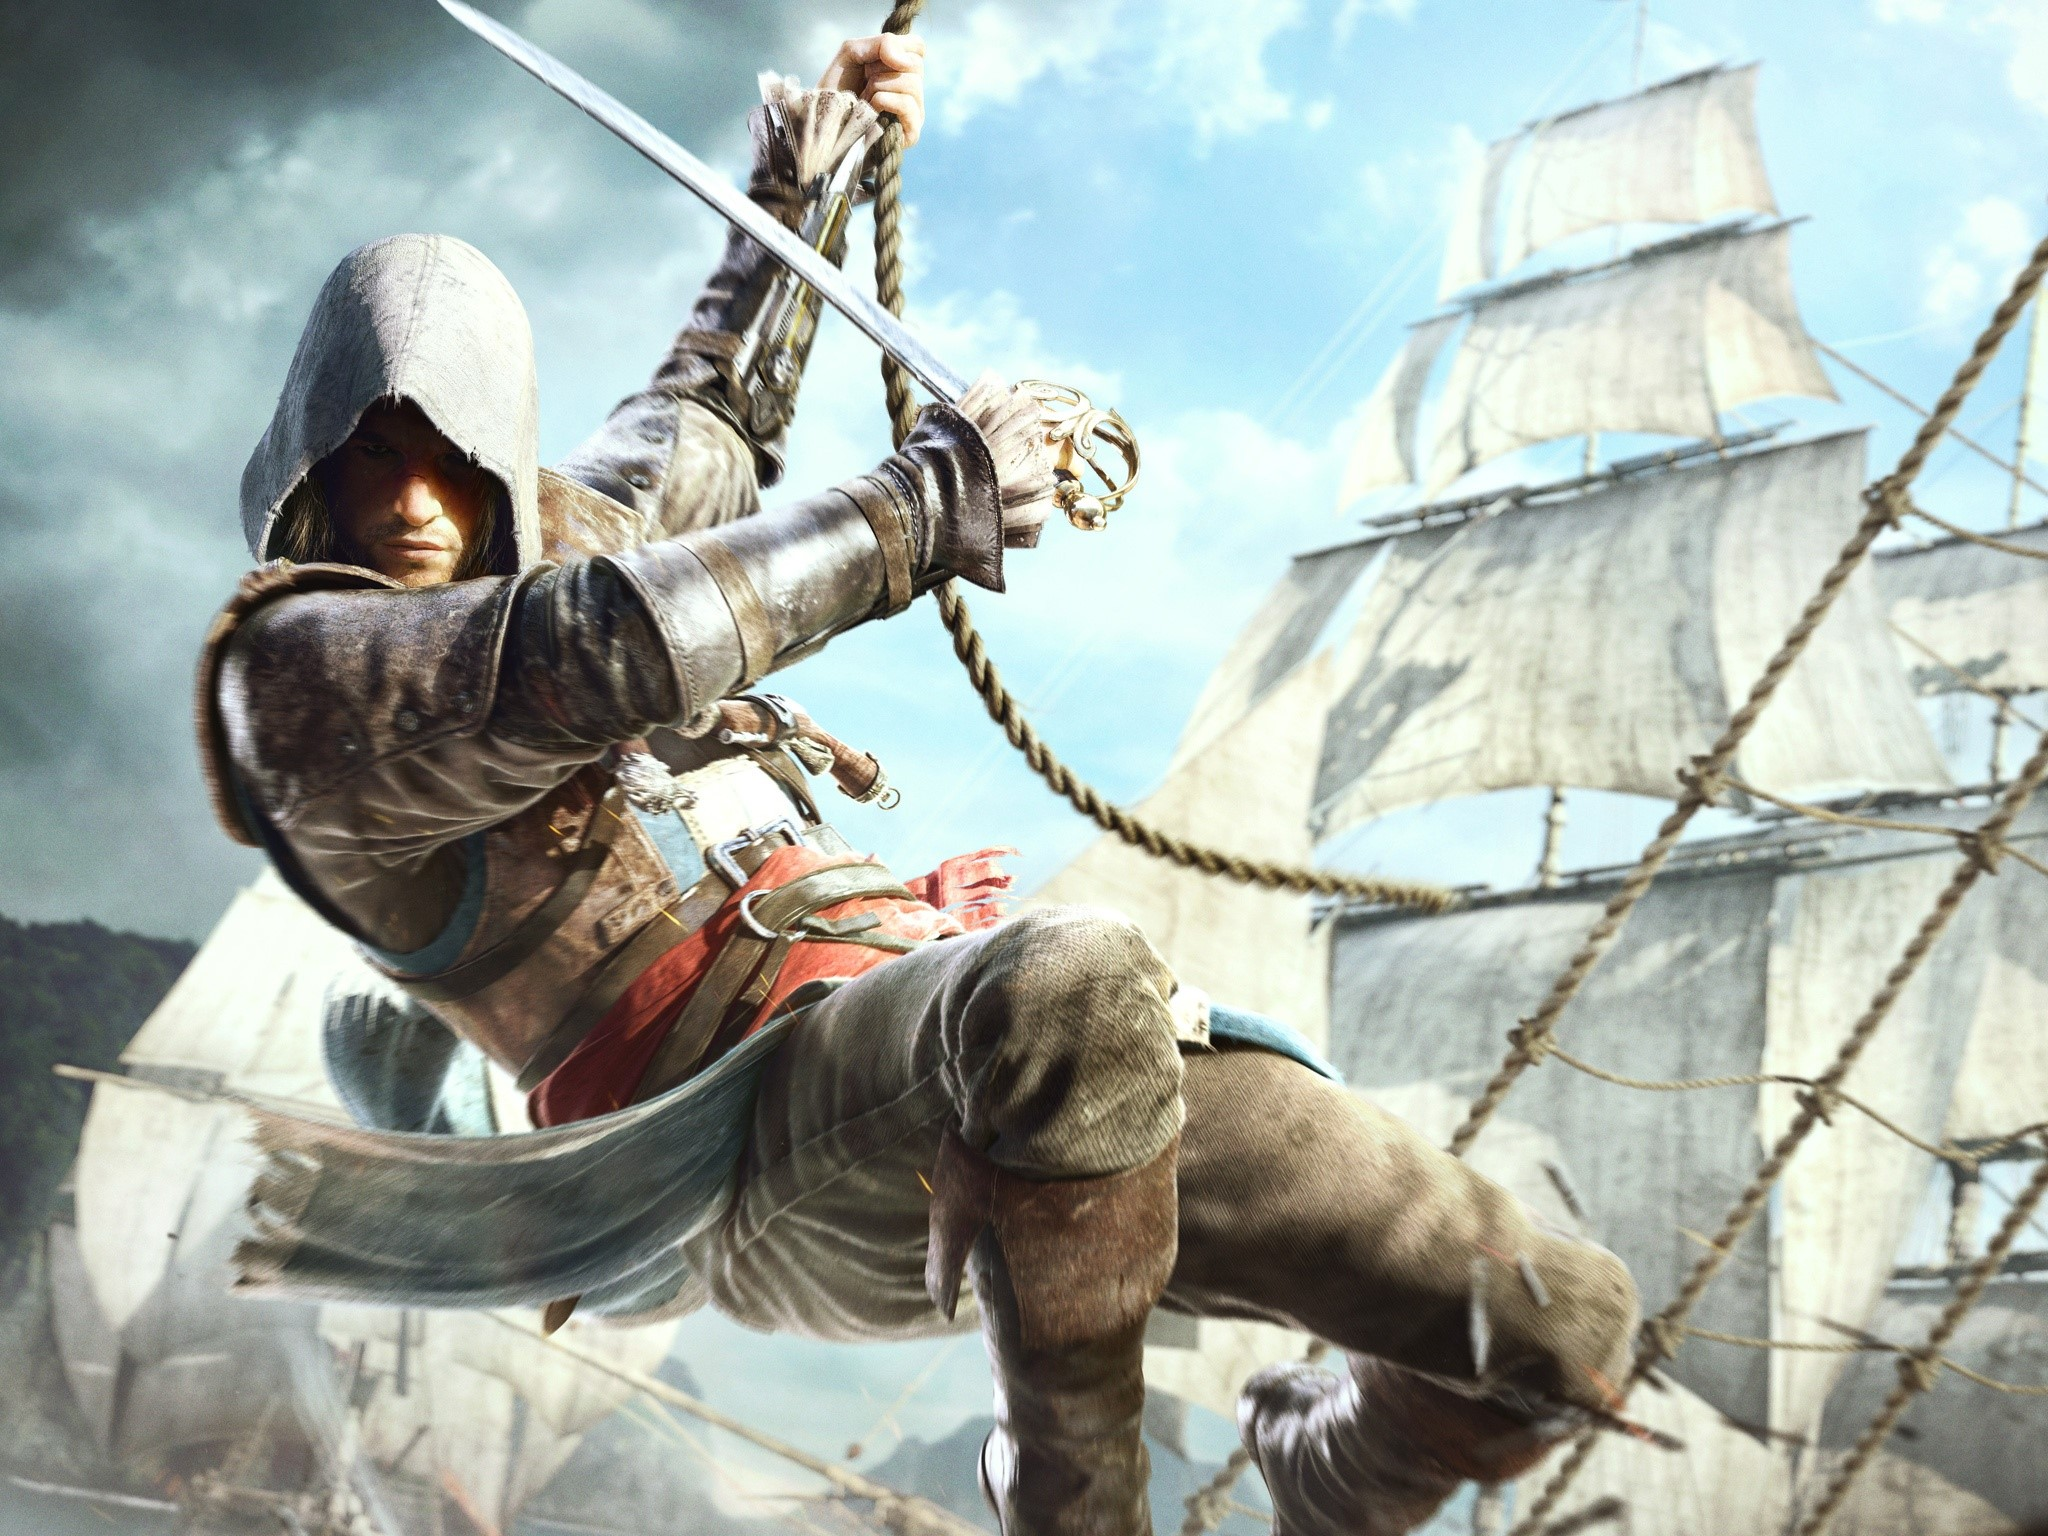 Fondos de pantalla Edward kenway en Assassins Creed 4